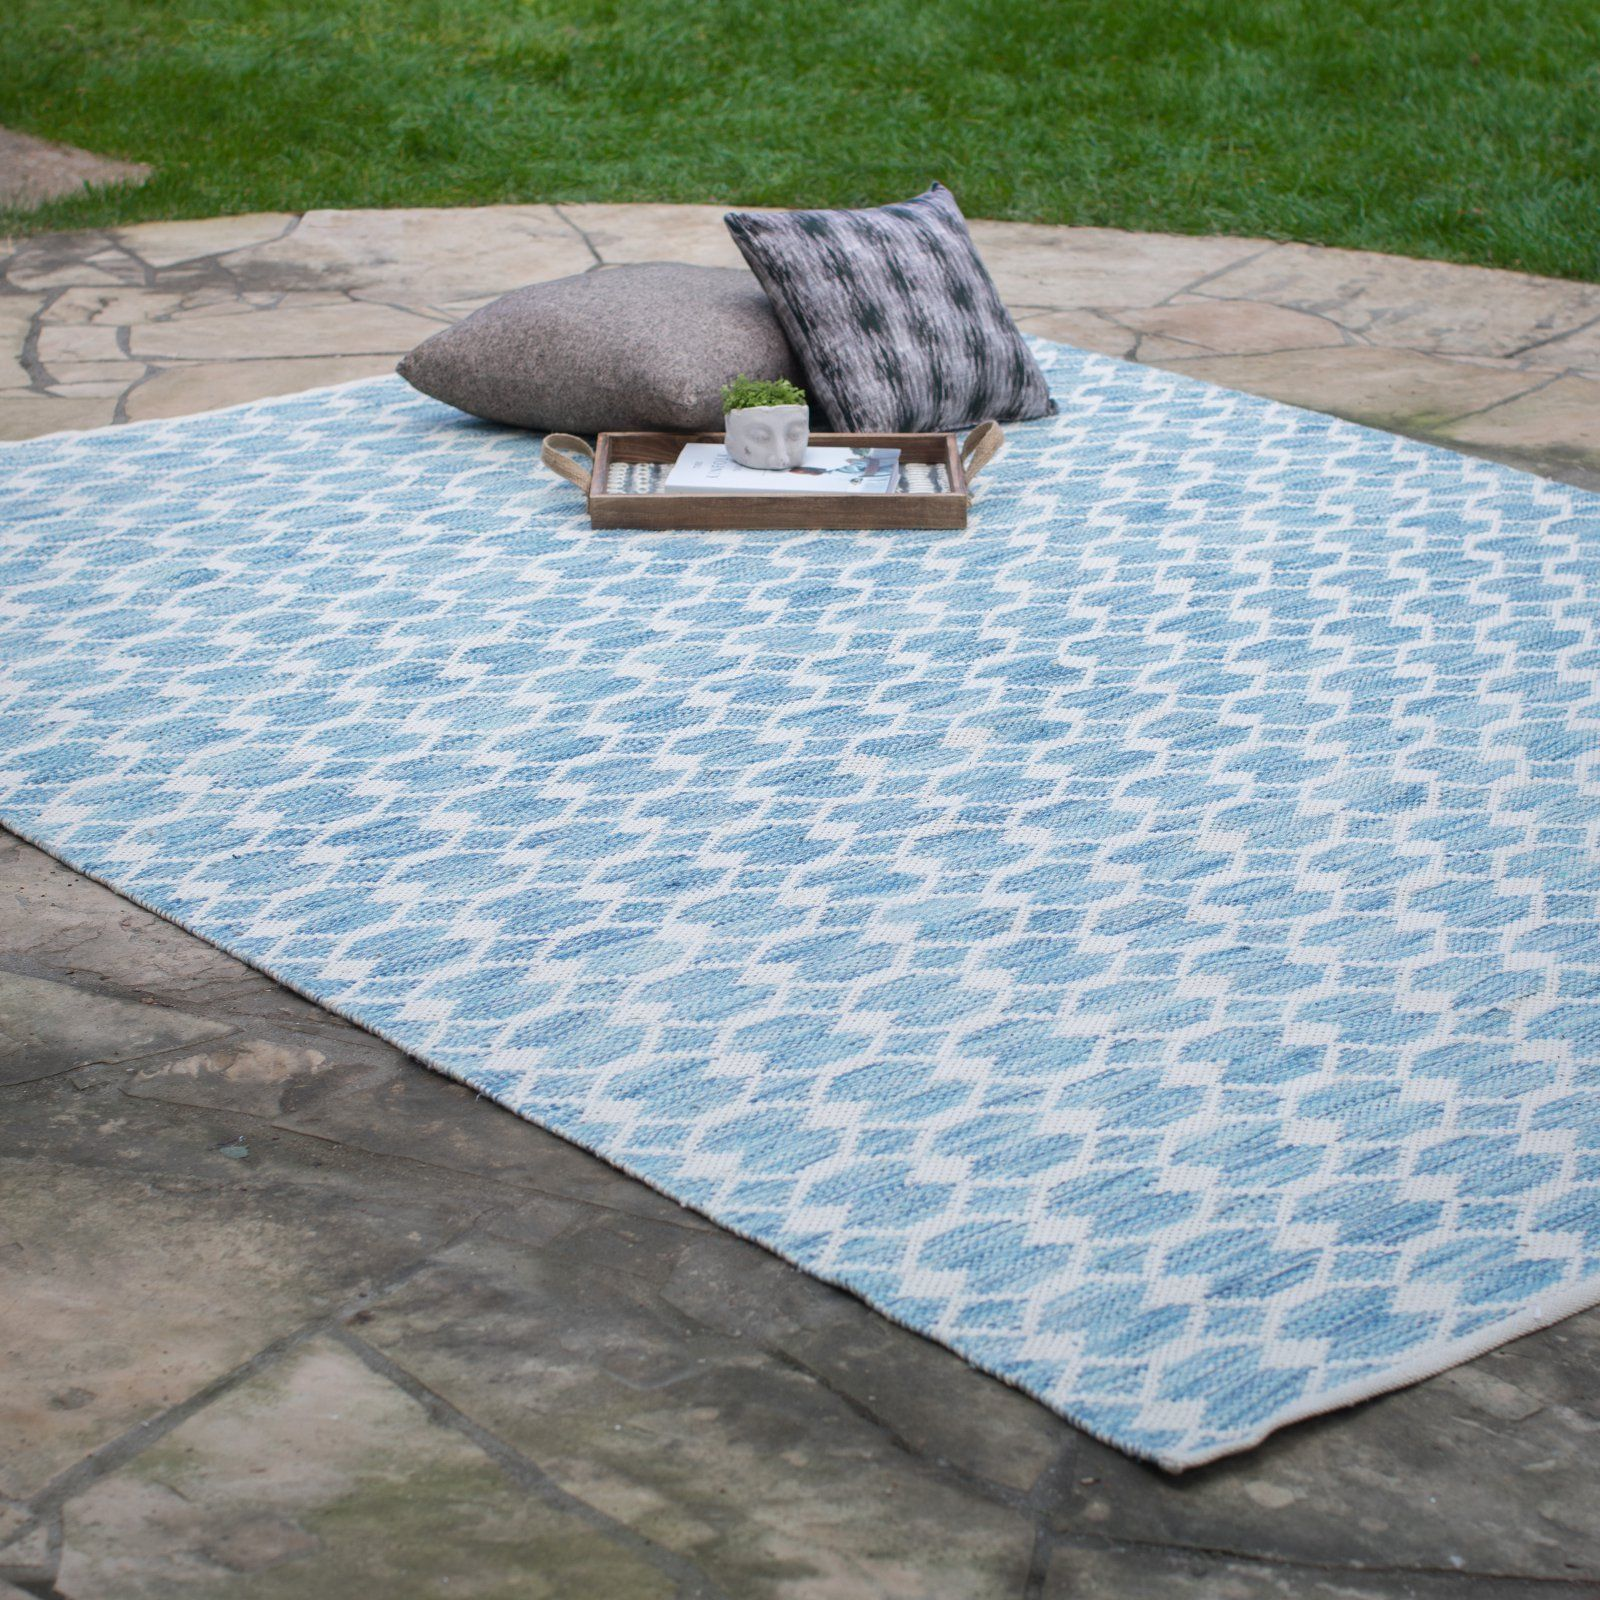 Outdoor Pool Area Rugs: Hand Woven Blue Medallion Outdoor Area Rug Pool Patio 3